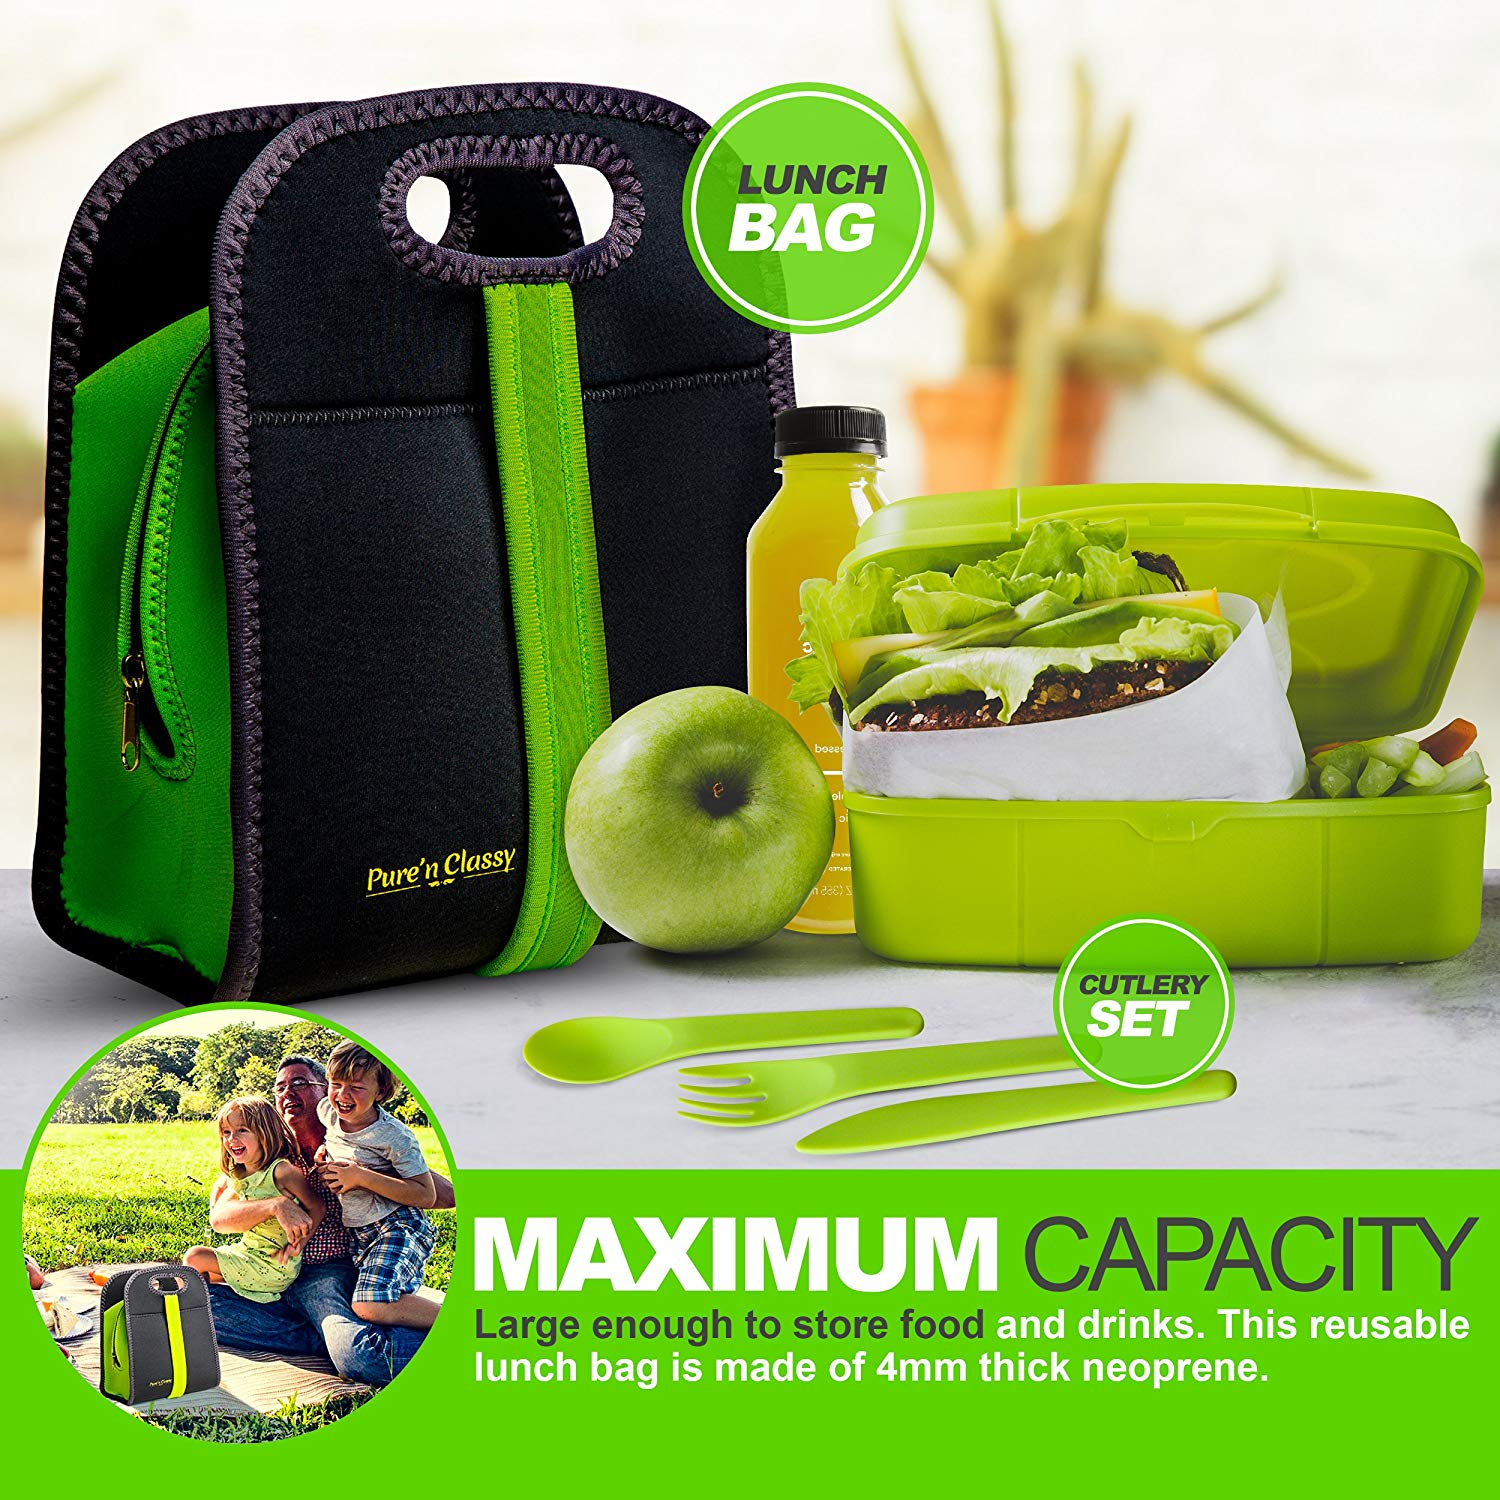 Easy to carry, useful and reusable neoprene lunch boxes